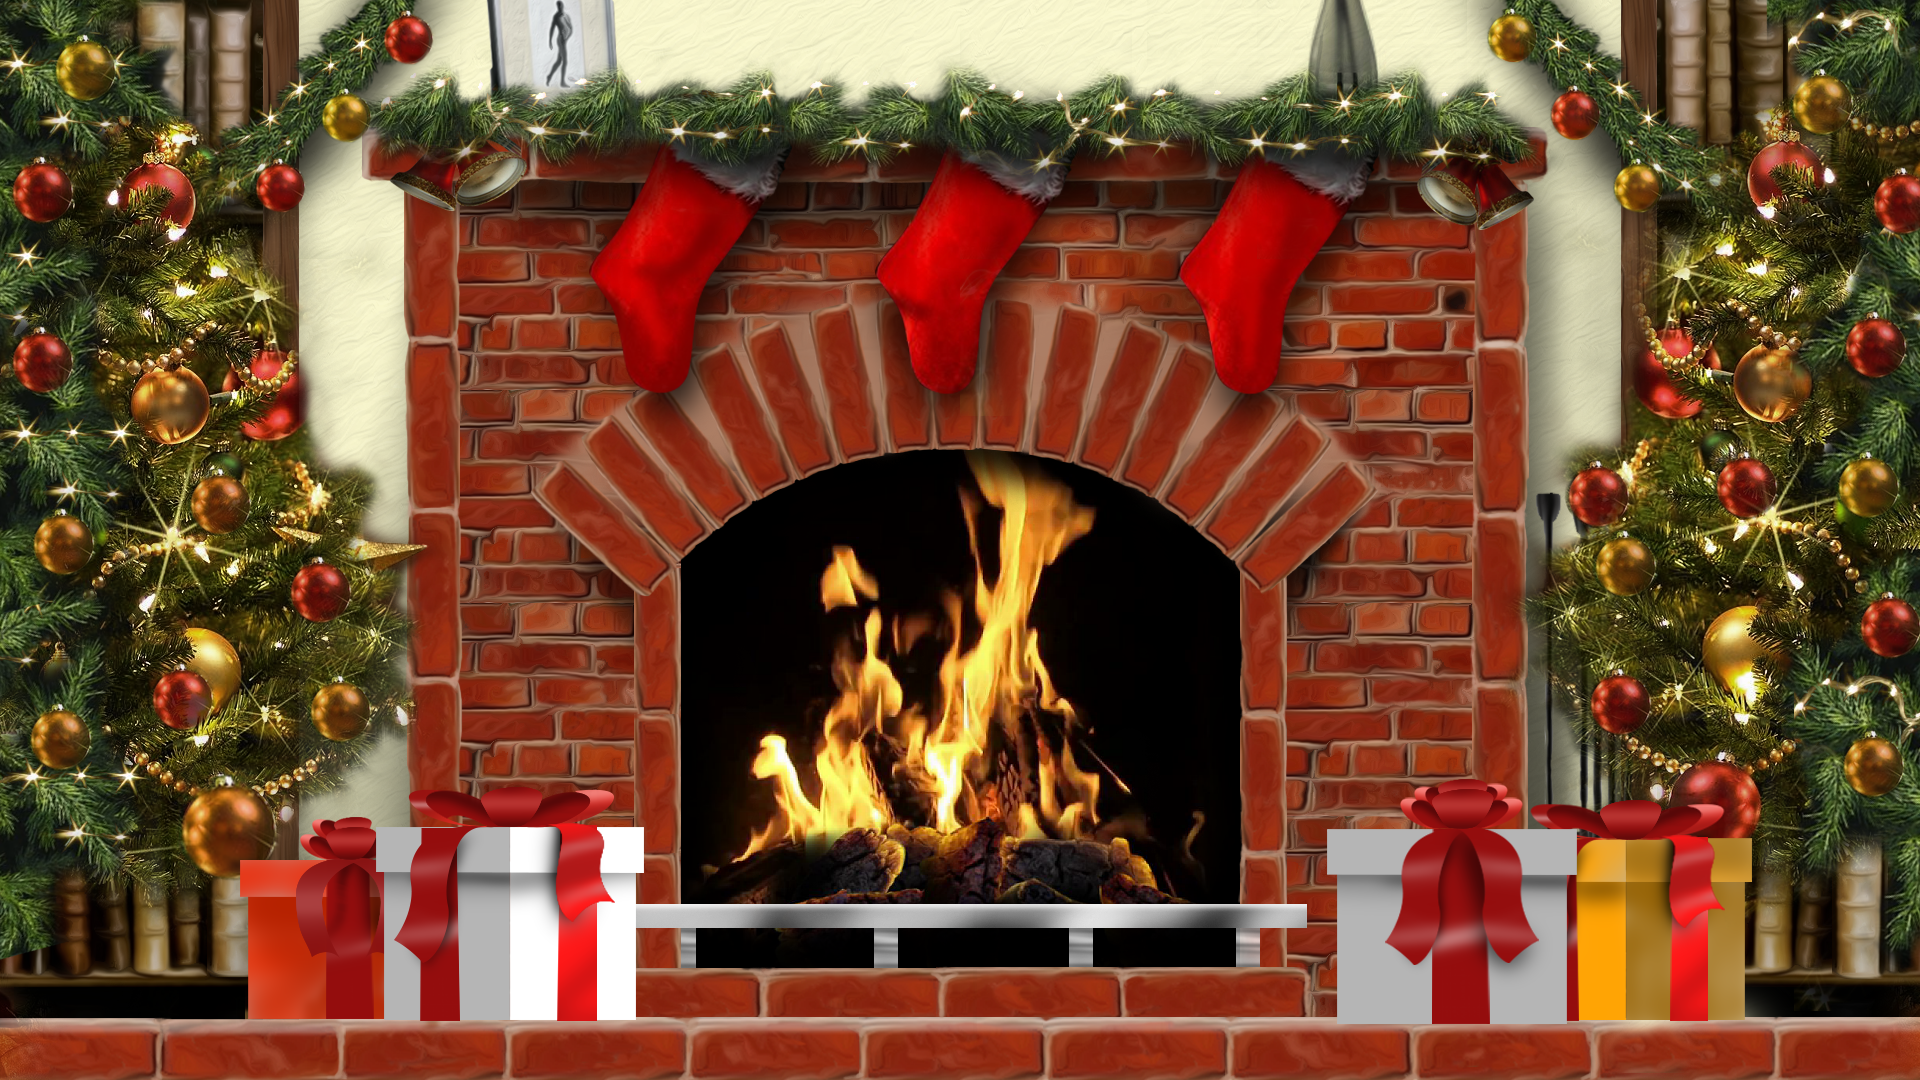 Christmas Fireplaces Pictures Amazing Christmas Fireplaces App Ranking And Store Data  App Annie